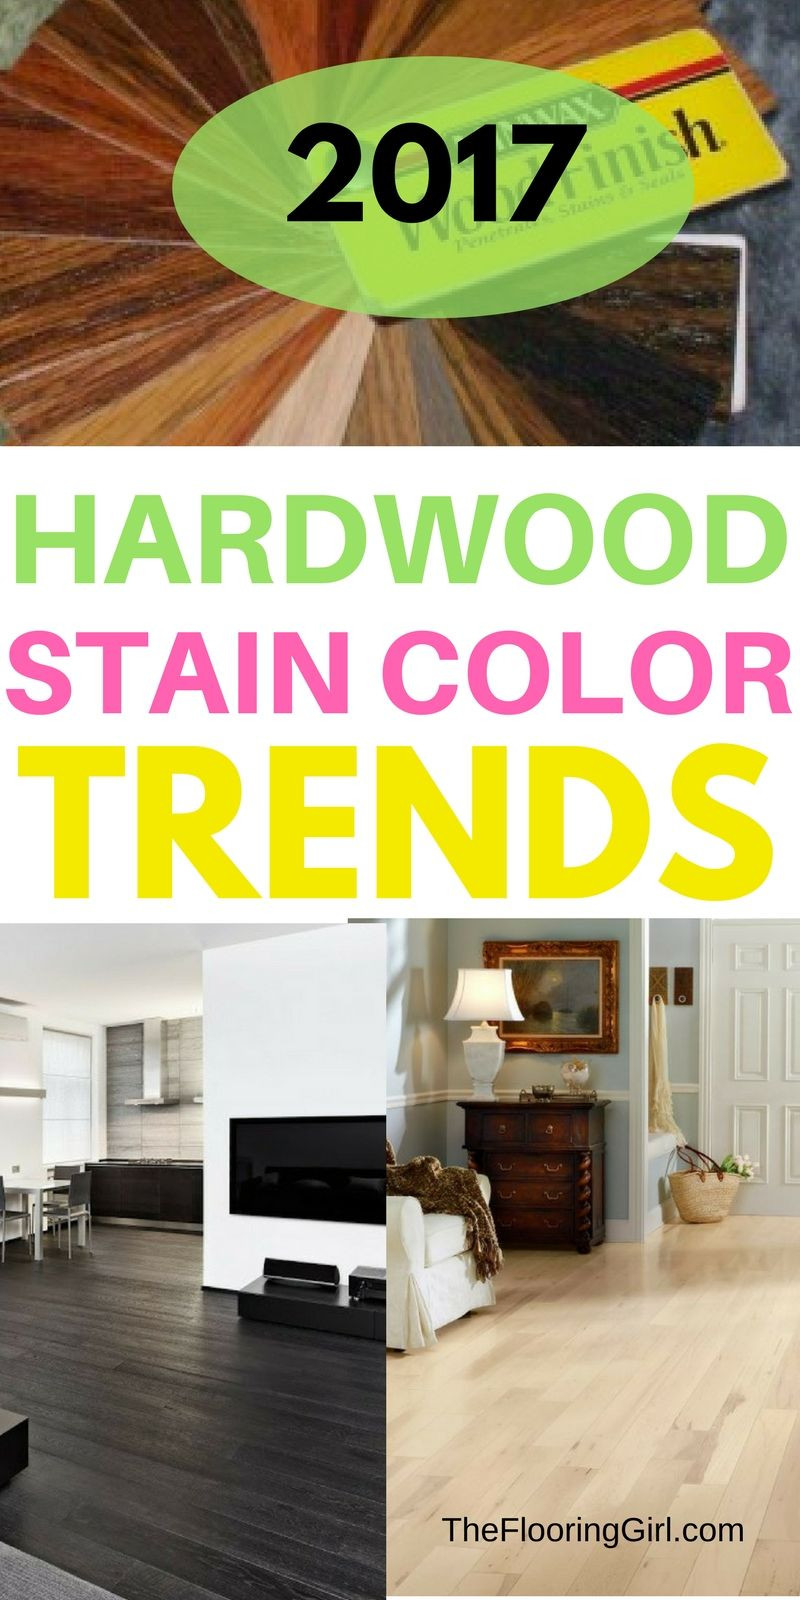 refinishing painted hardwood floors of hardwood flooring stain color trends 2018 more from the flooring intended for hardwood flooring stain color trends for 2017 hardwood colors that are in style theflooringgirl com